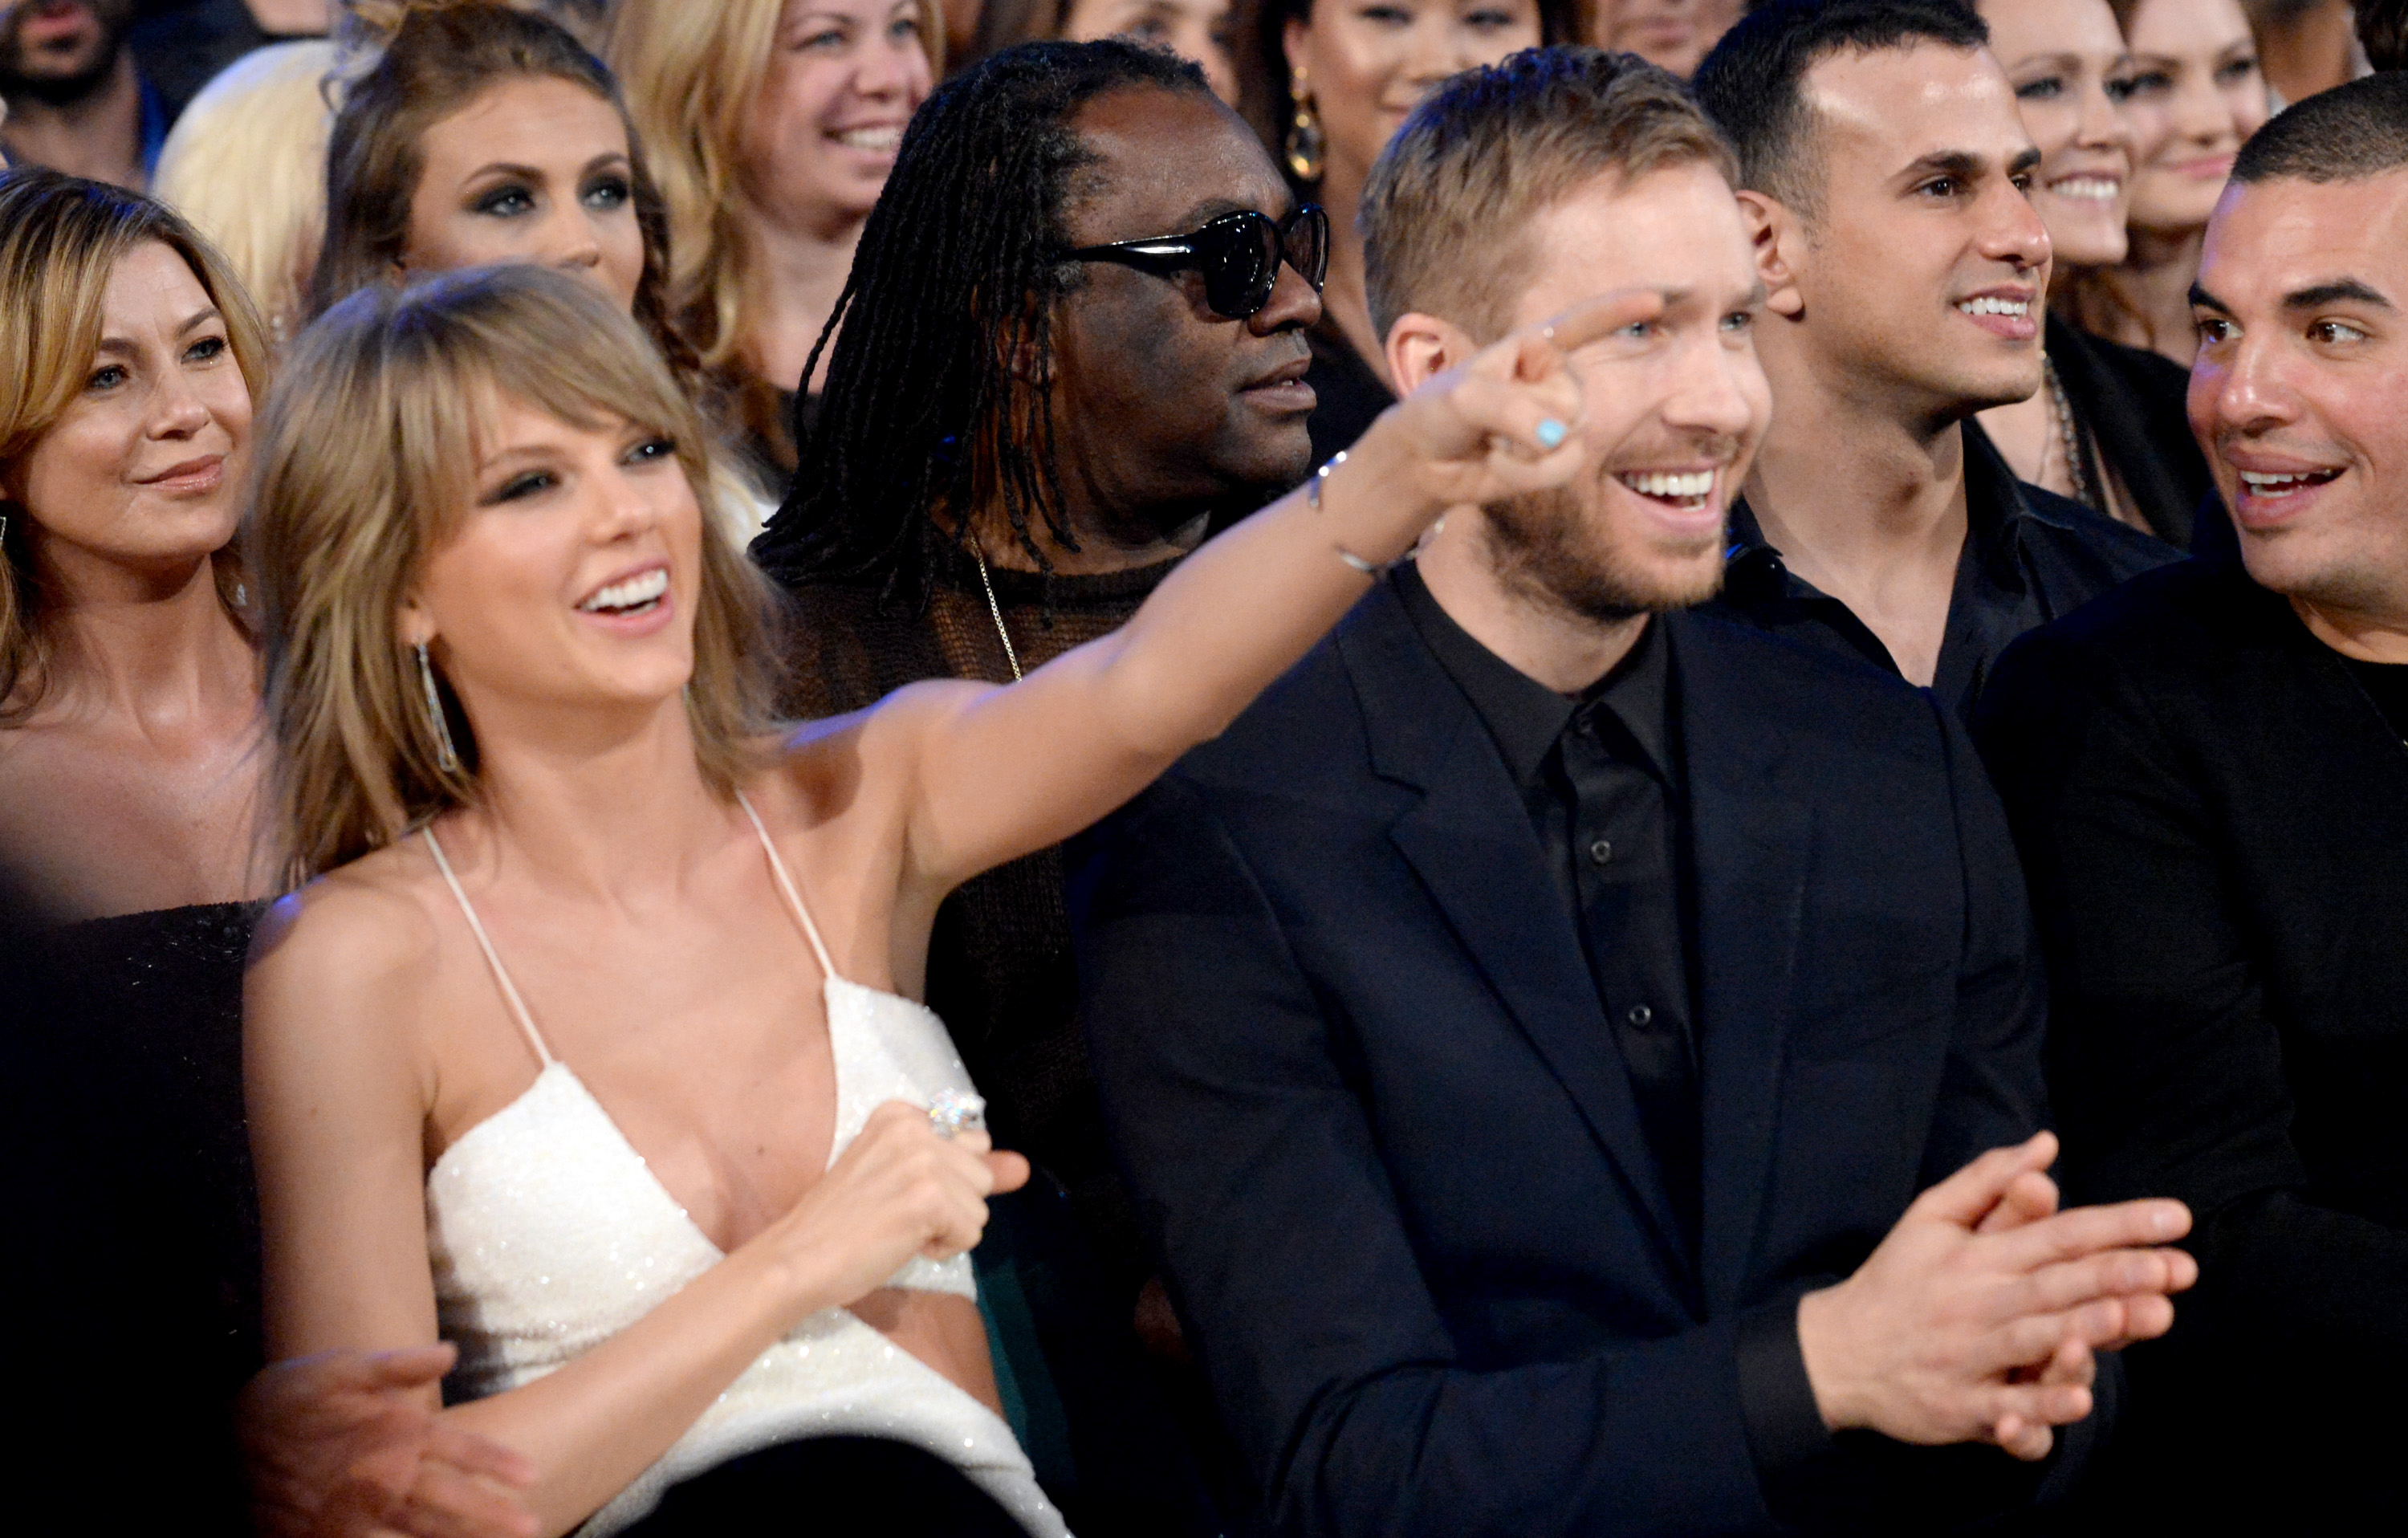 LAS VEGAS, NV - MAY 17:  Singer Taylor Swift (L) and DJ Calvin Harris attend the 2015 Billboard Music Awards at MGM Grand Gar